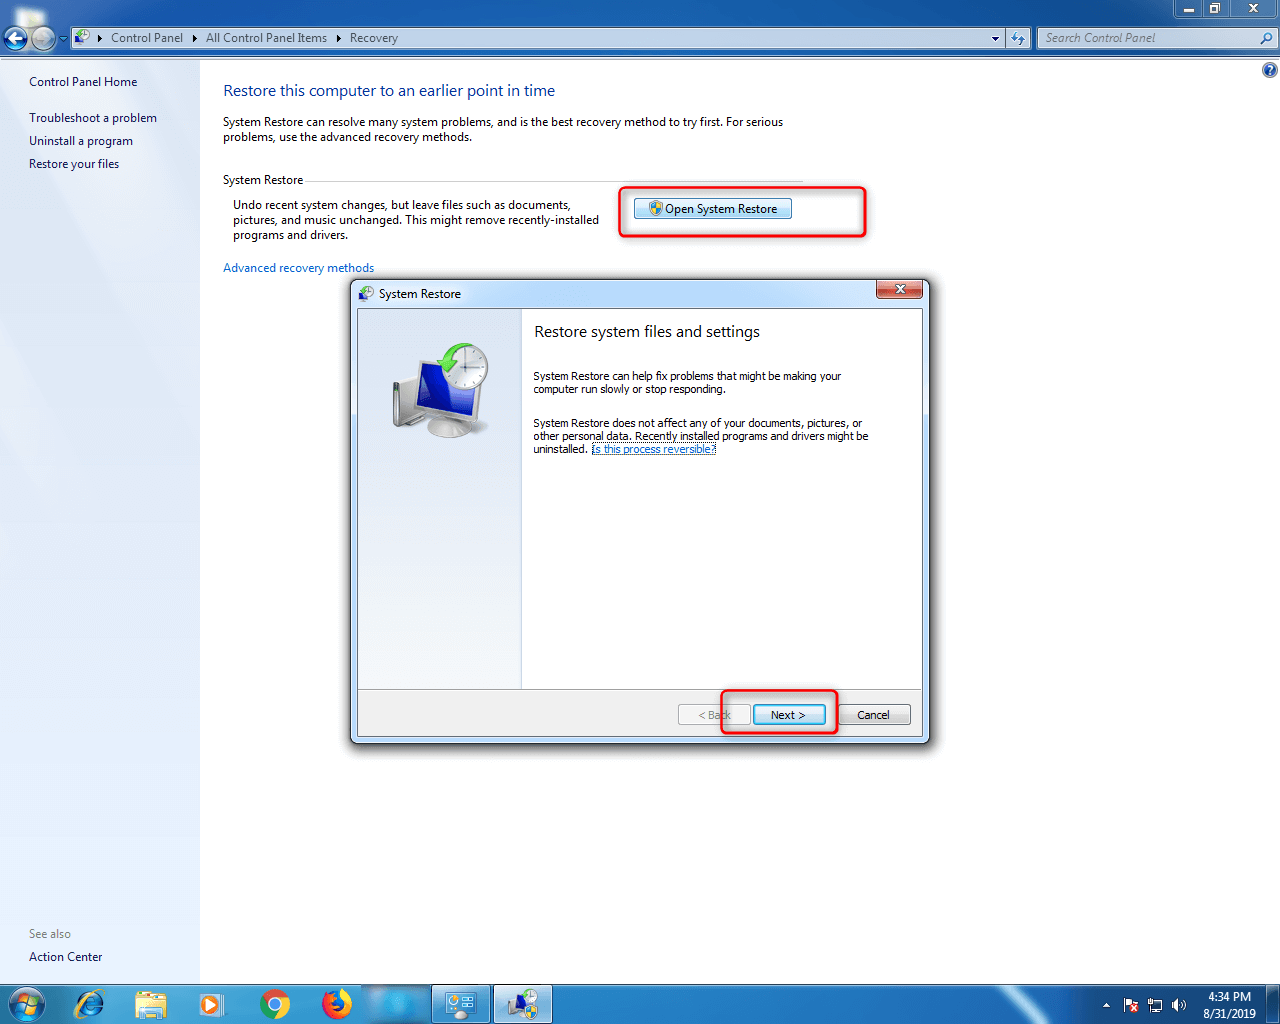 Step 5- Windows 7 Control Panel